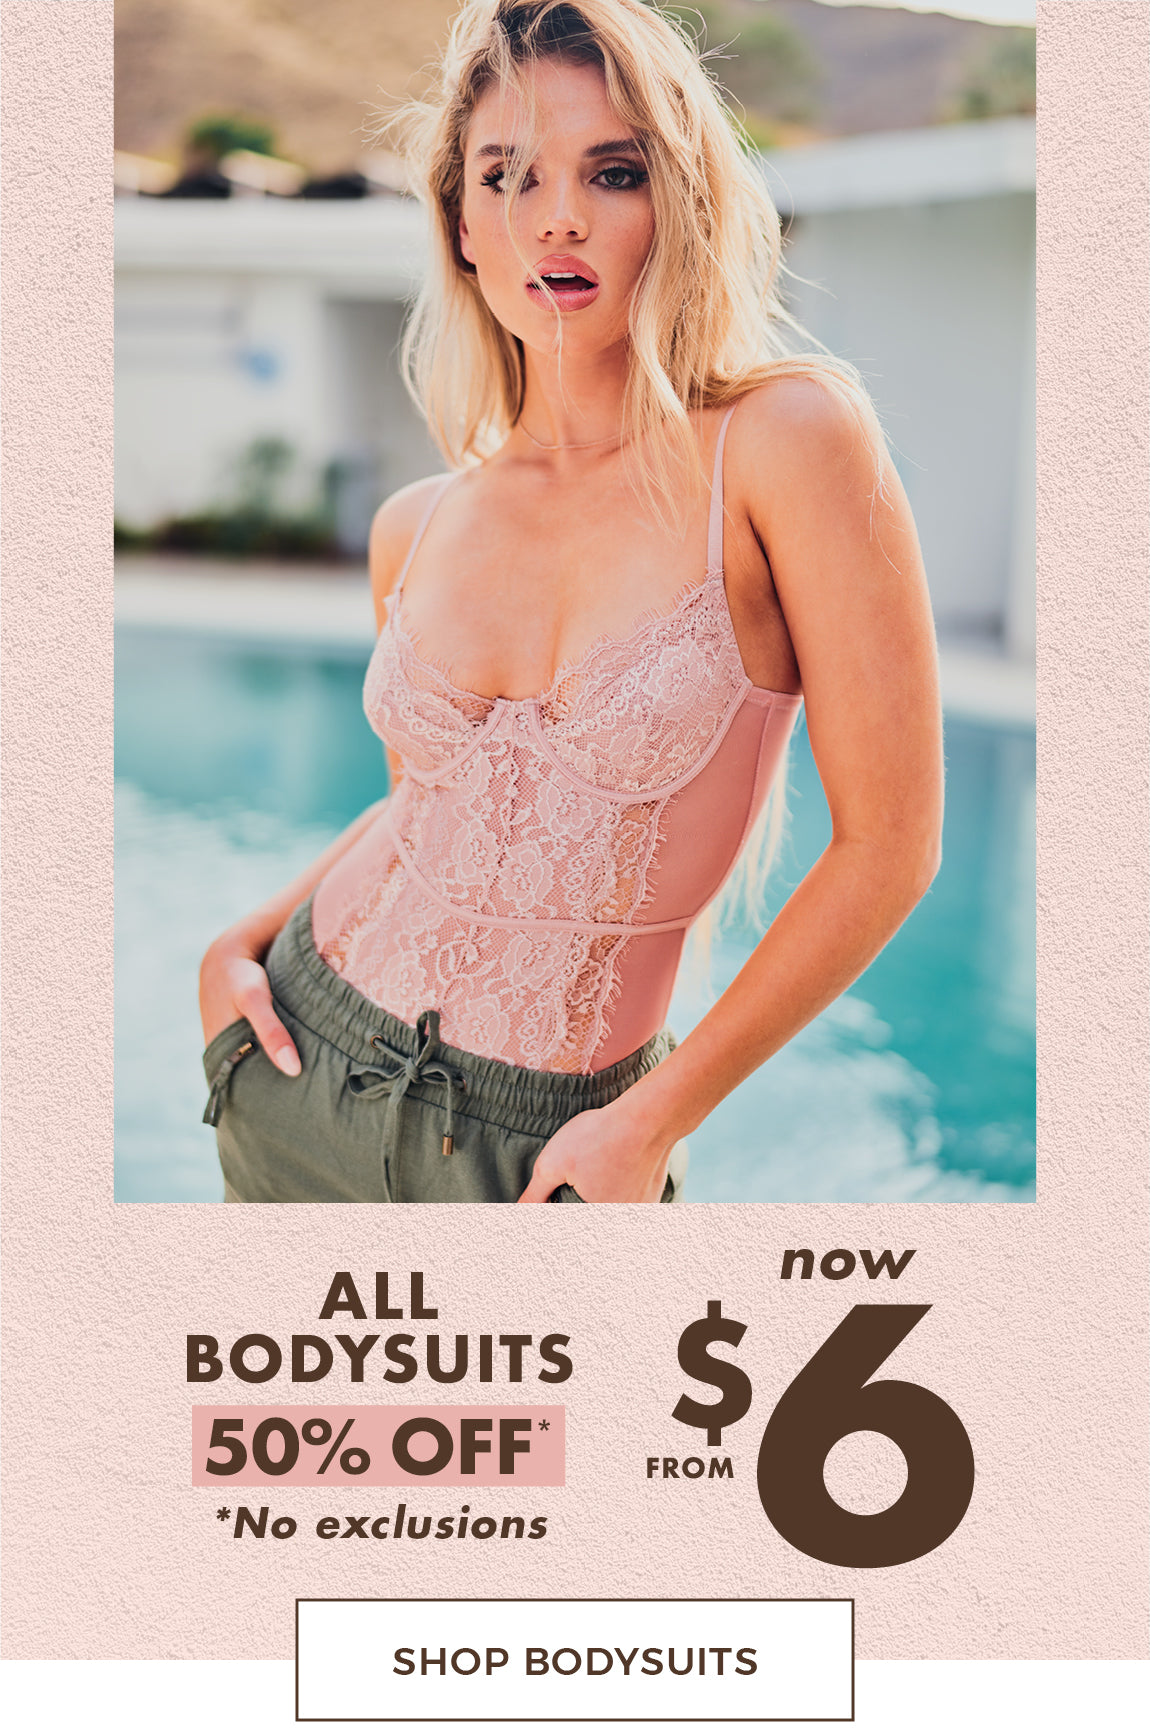 Sirens | Shop Bodysuits at 50% Off